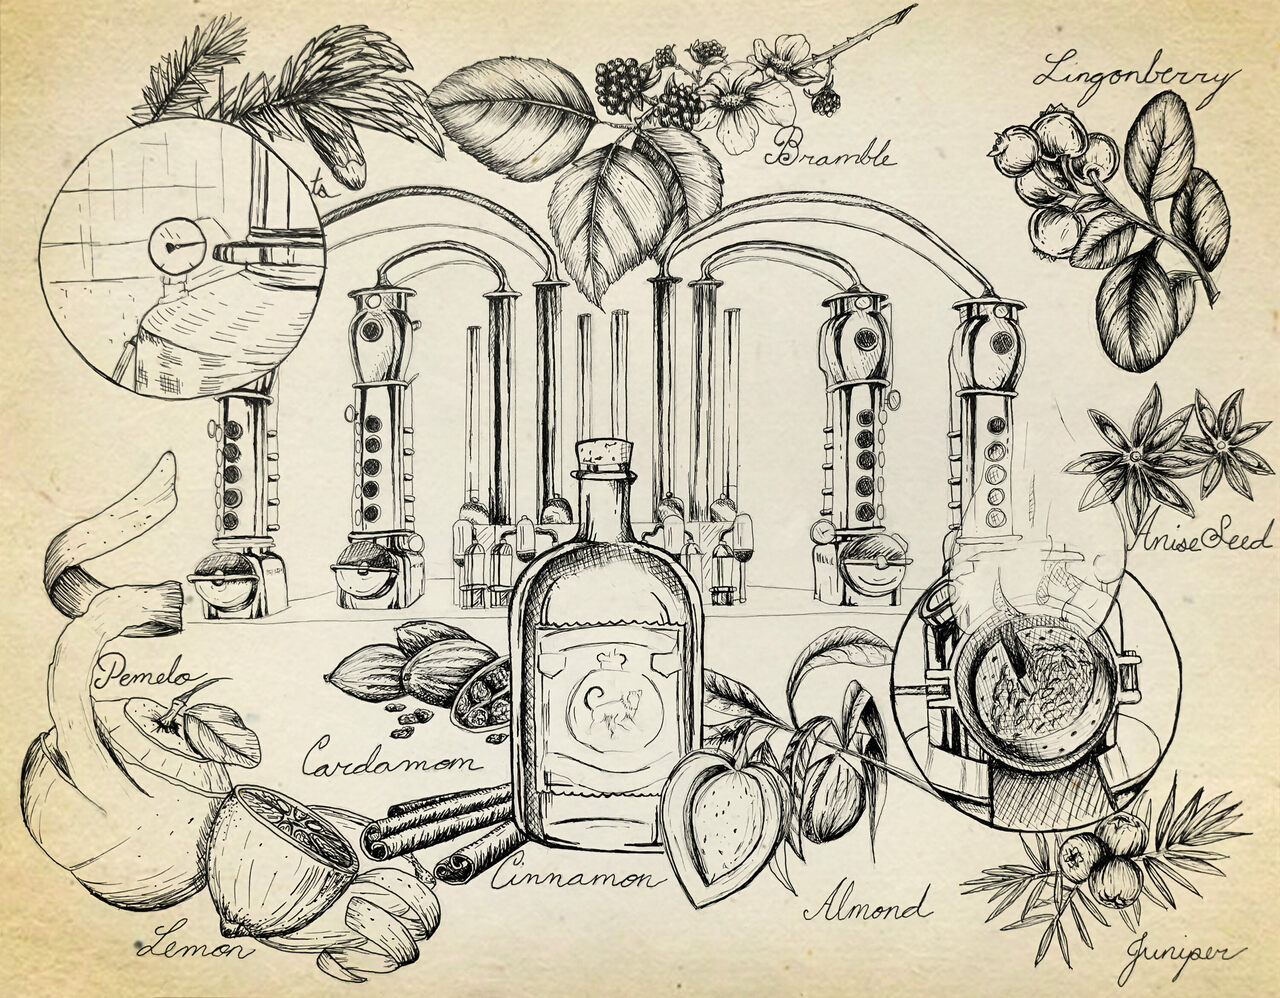 Many factors in the distilling process affect gin's flavor profile.